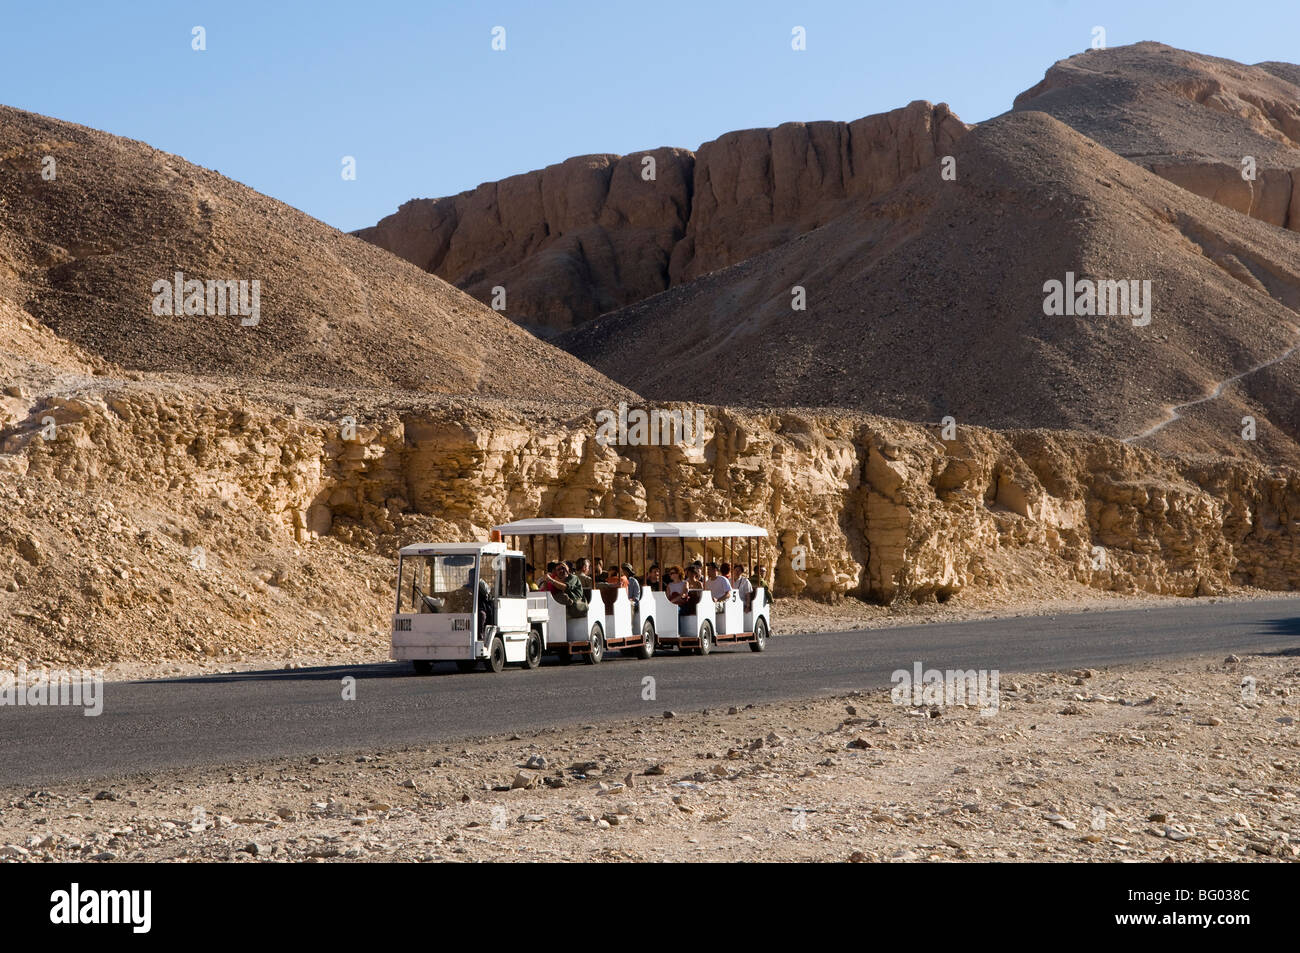 Tourist train at Valley of the Kings near Luxor Egypt - Stock Image